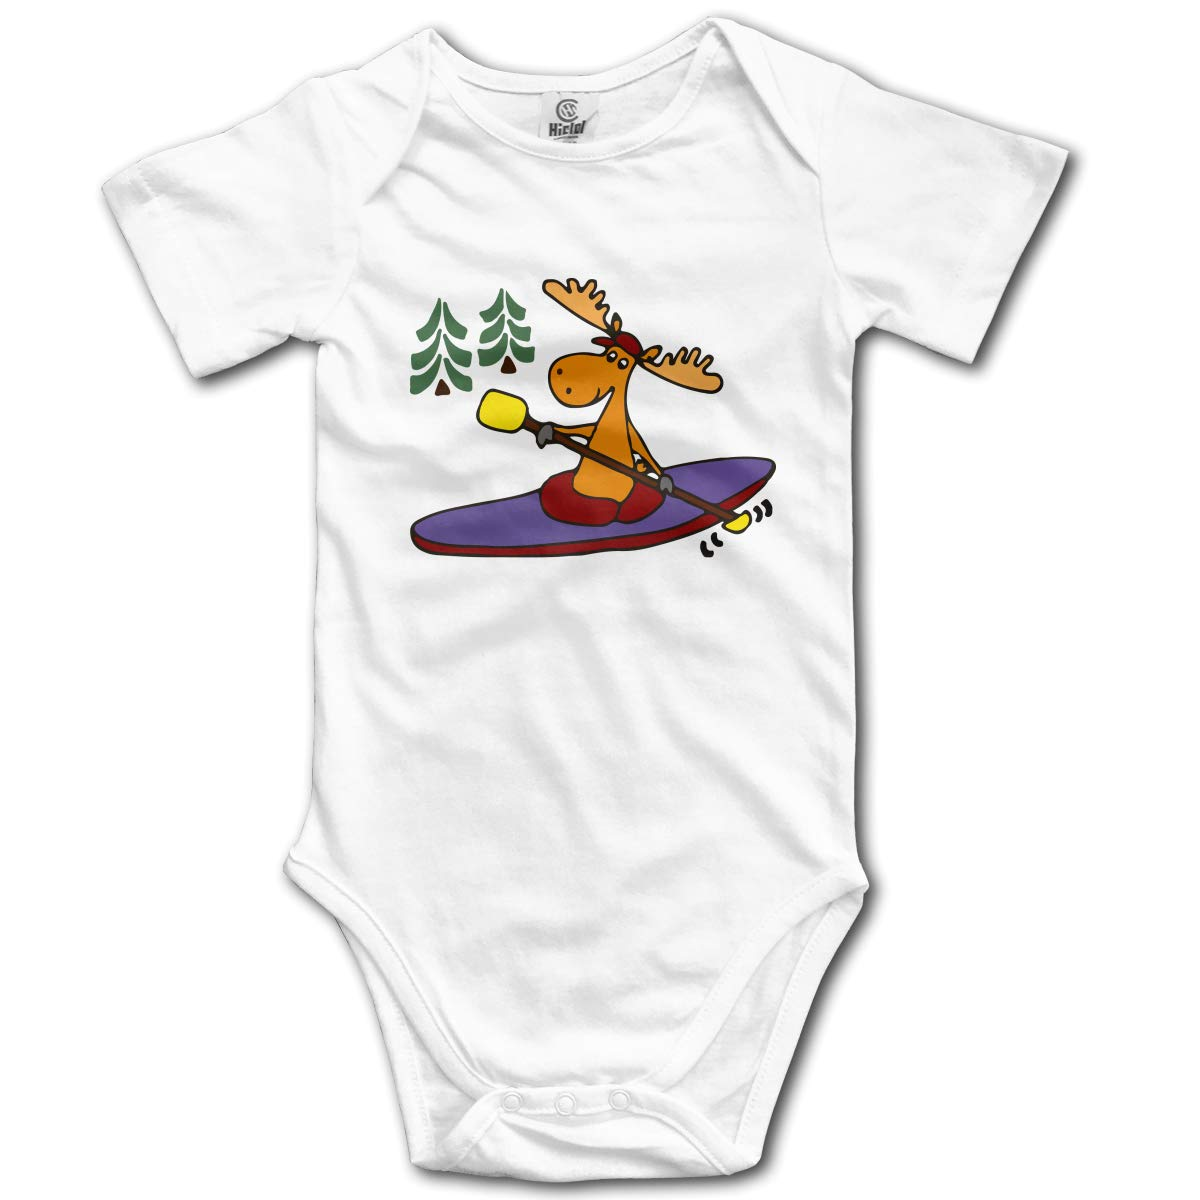 Kayaking Moose Unisex Solid Baby 100/% Organic Cotton Outfits Sunsuit Clothes 0-2T